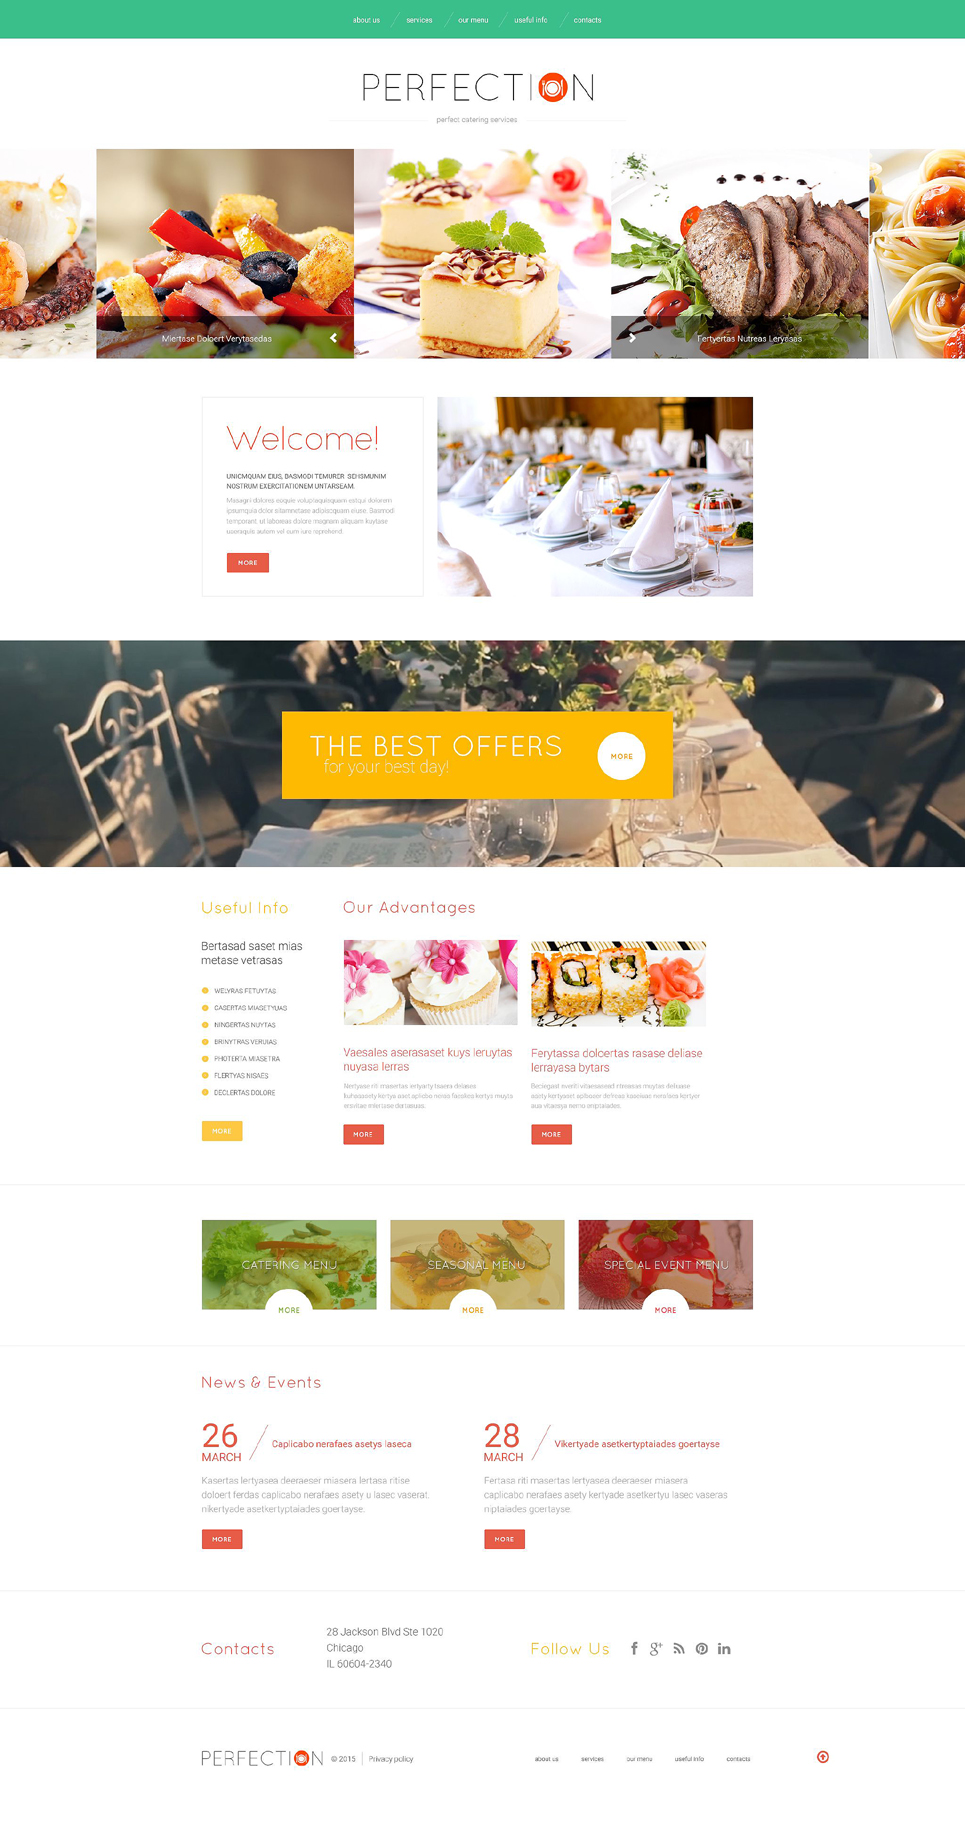 Food Delivery Services template illustration image